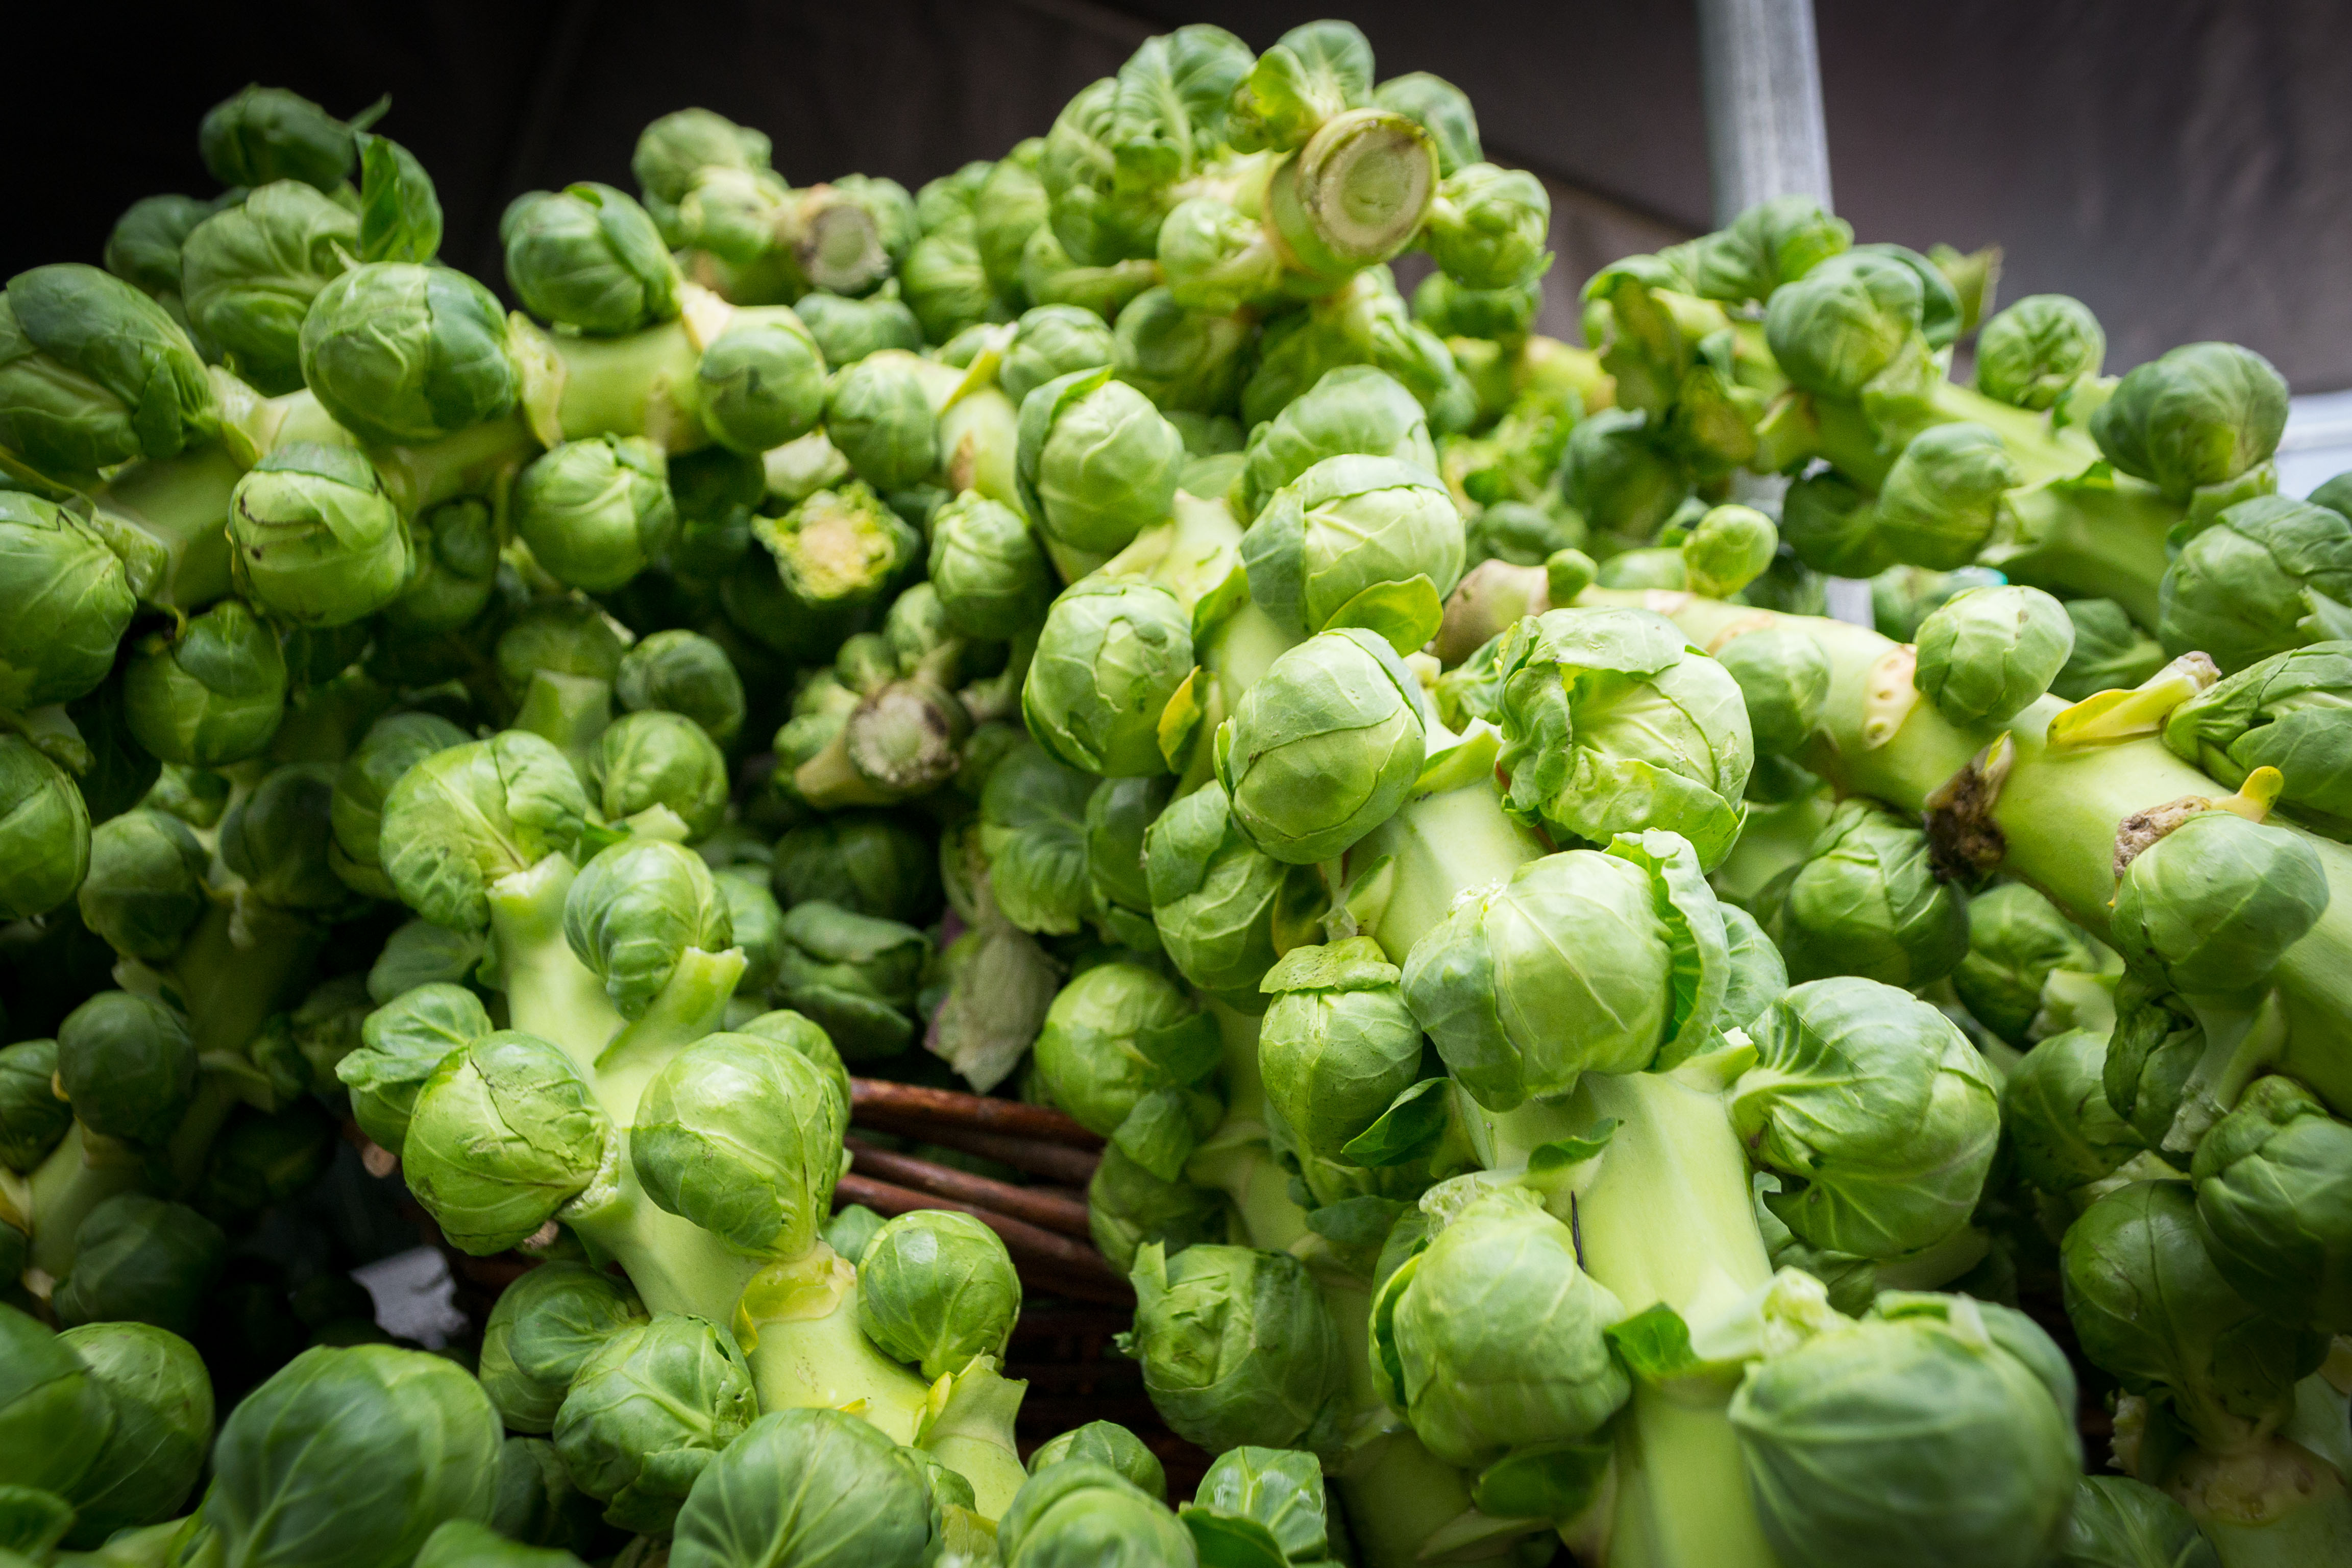 Brussels Sprouts. Vitamin C